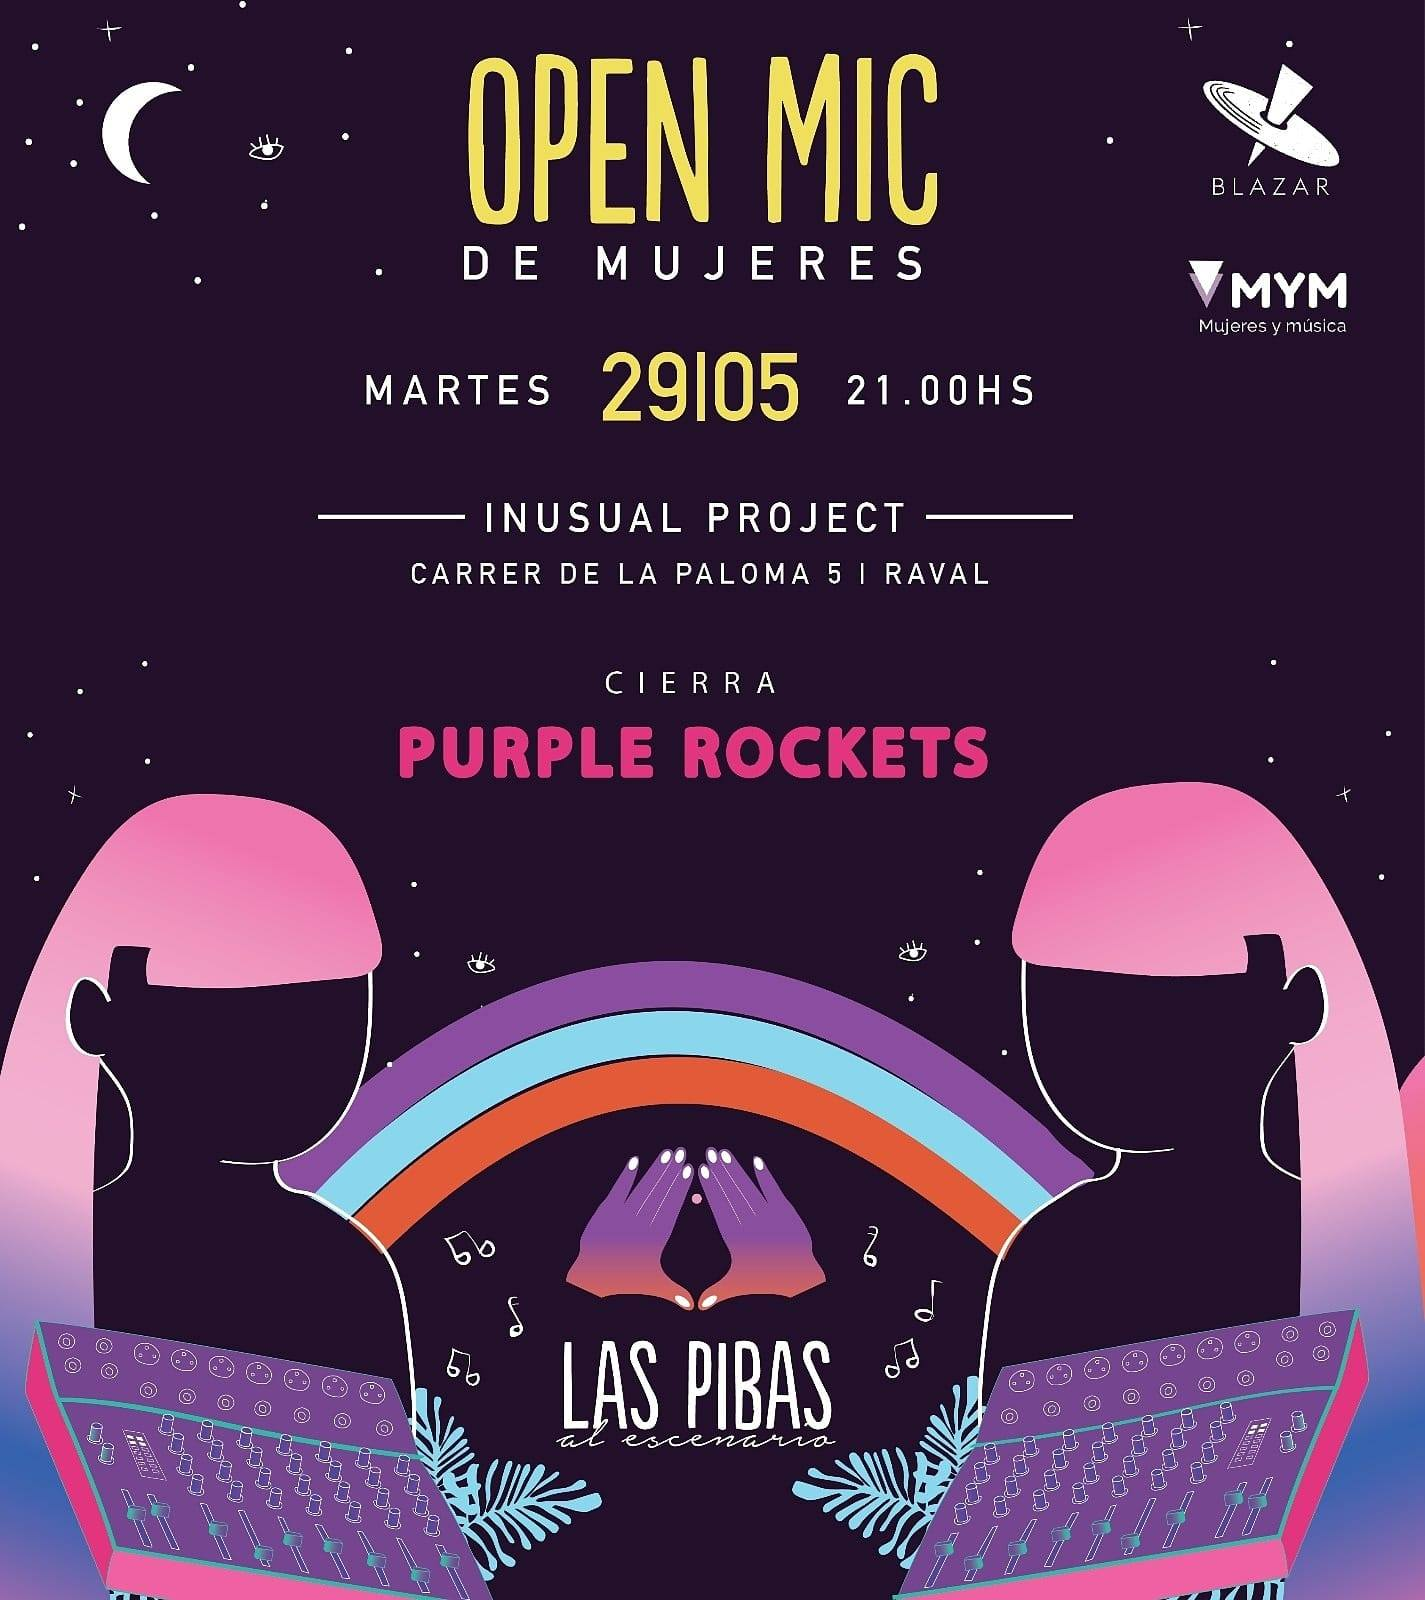 Open-MIc-Mujeres-Barcelona